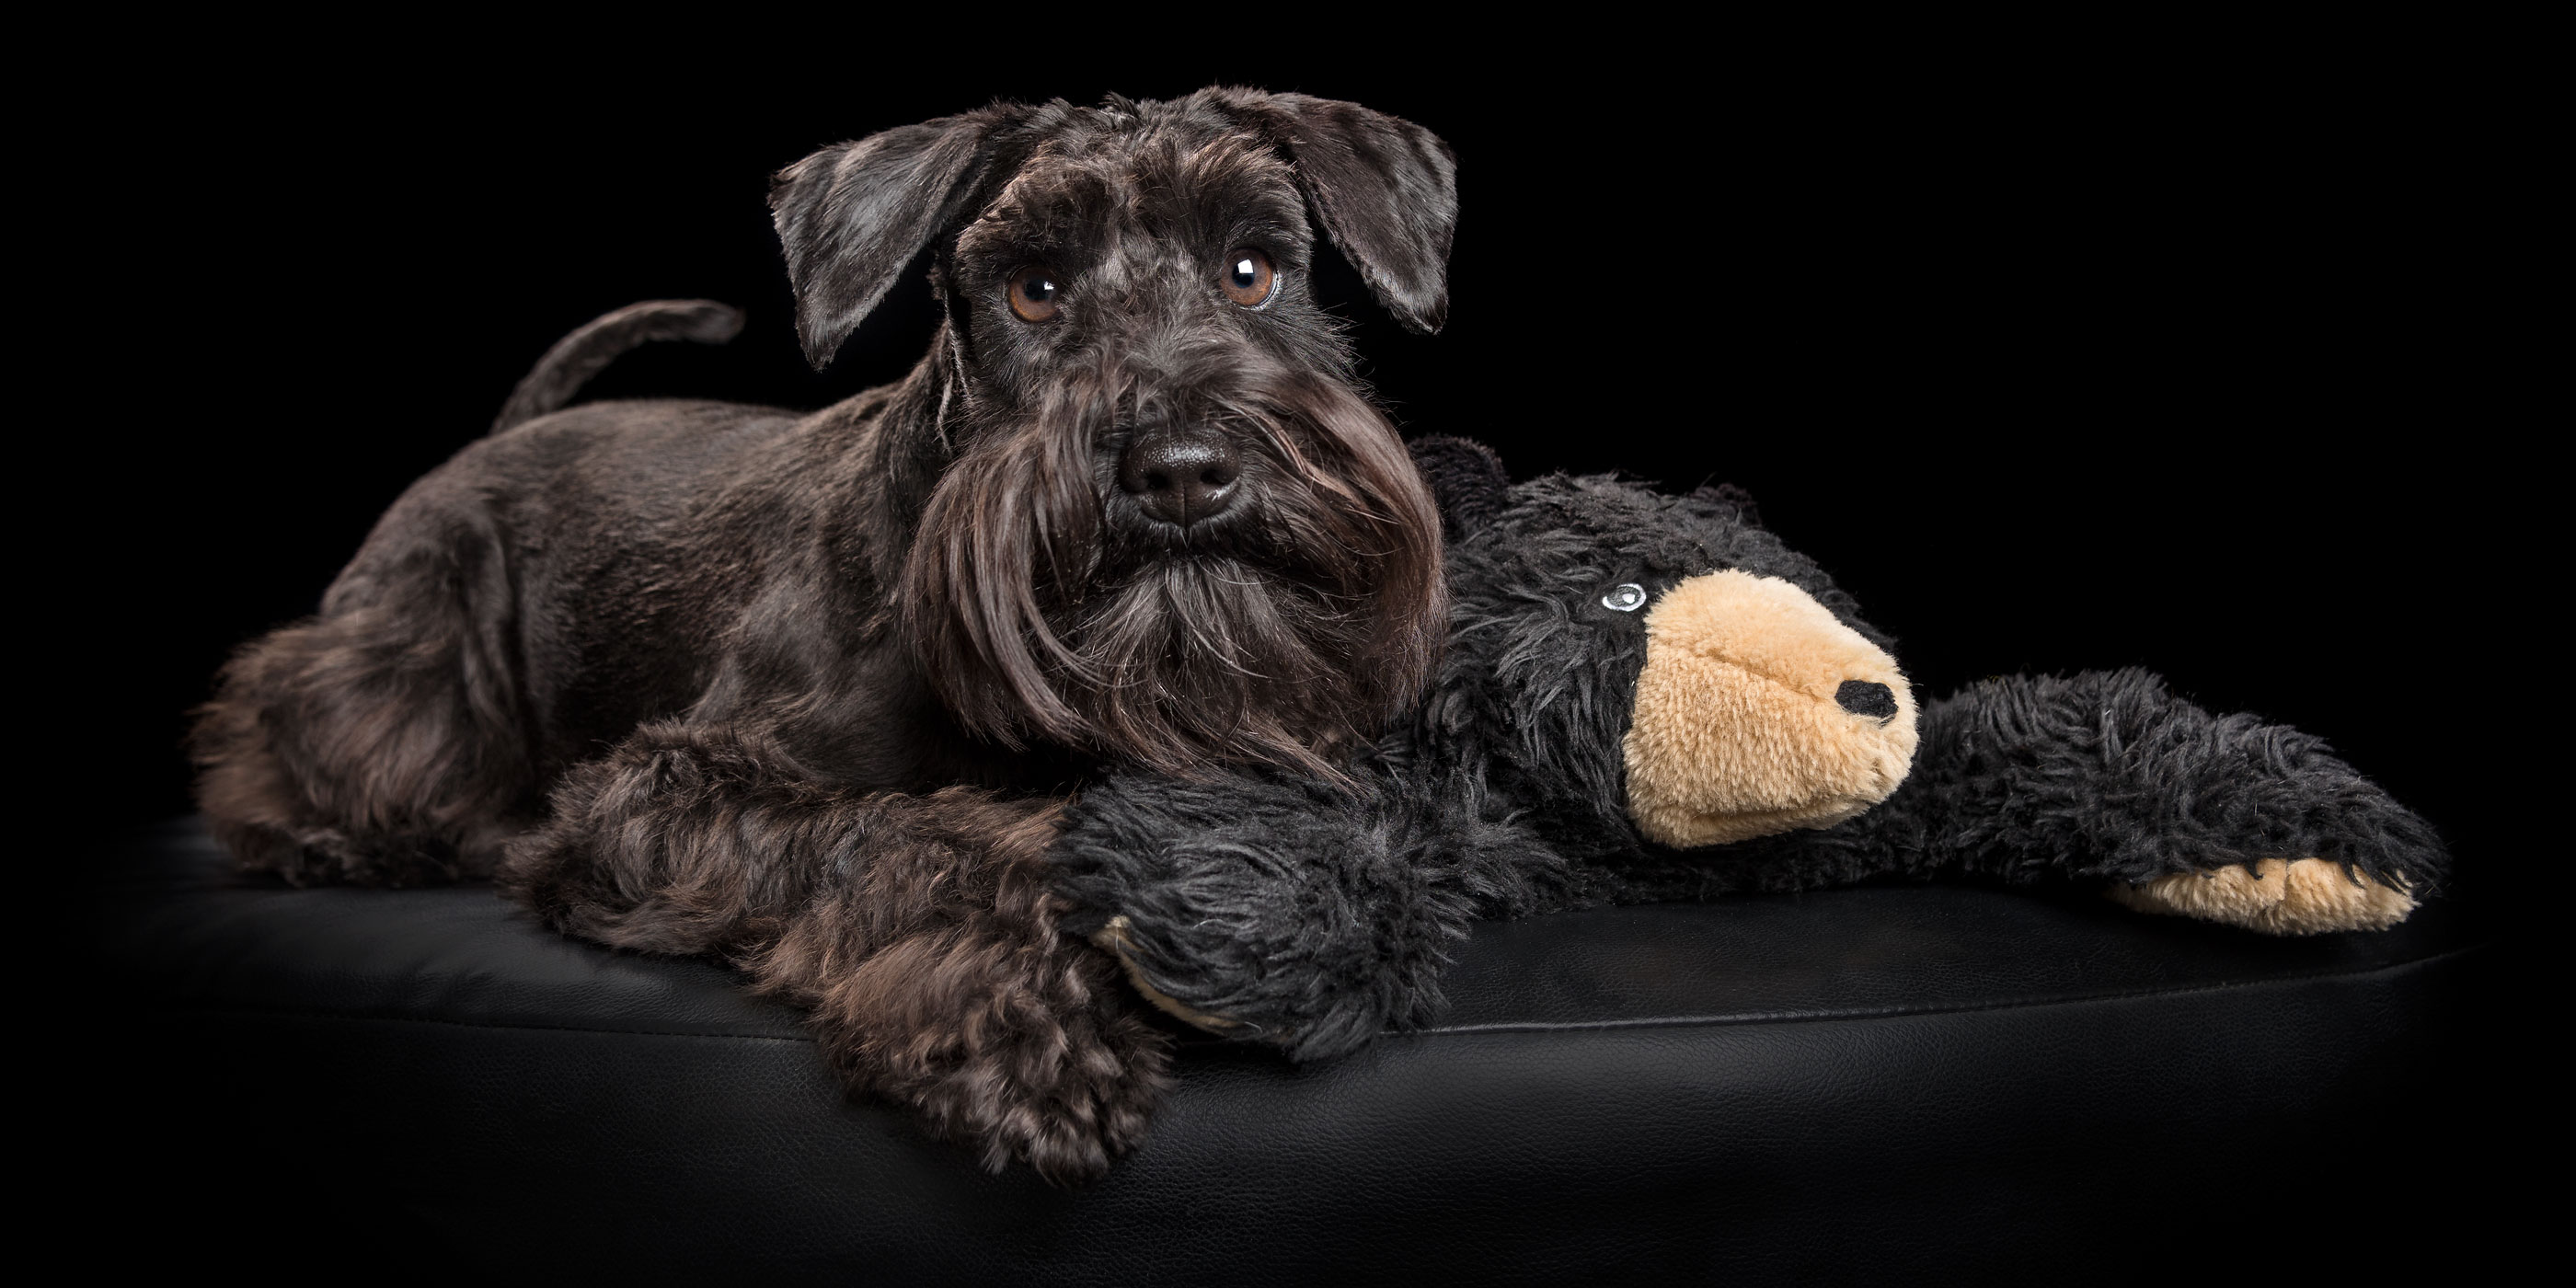 sweet black miniature schnauzer snuggling with toy